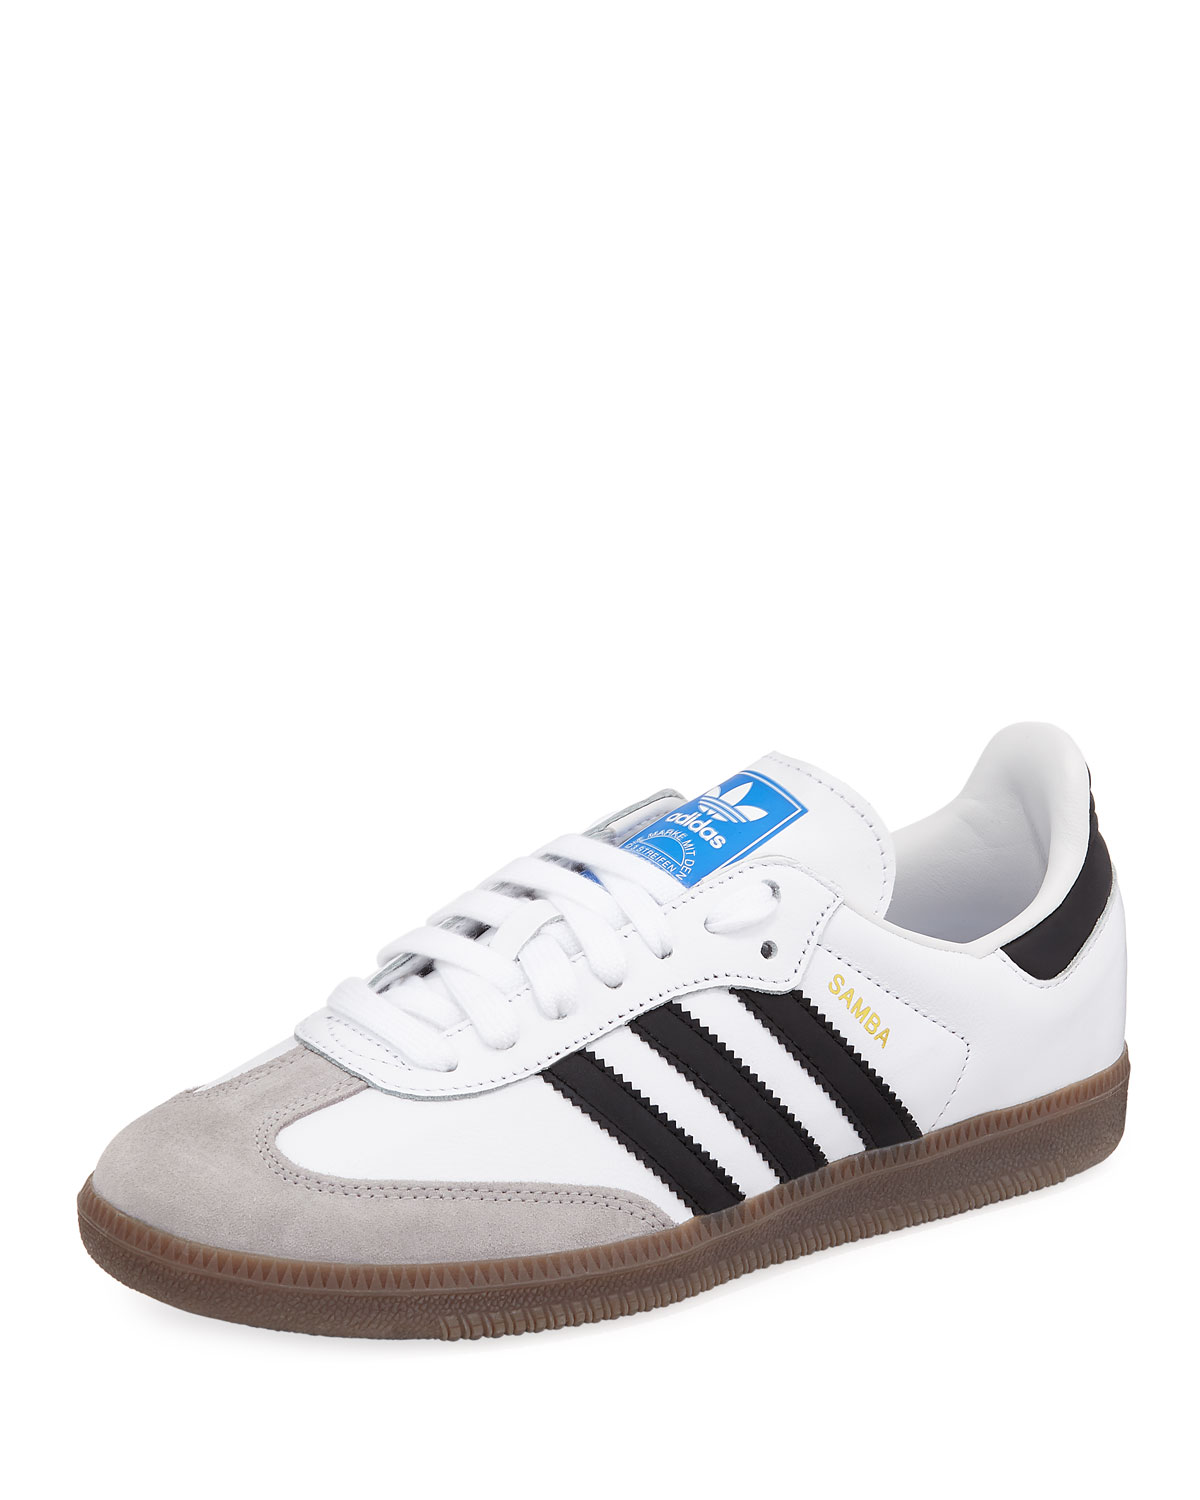 Adidas Samba Original Leather Suede Sneakers f55668c6412a